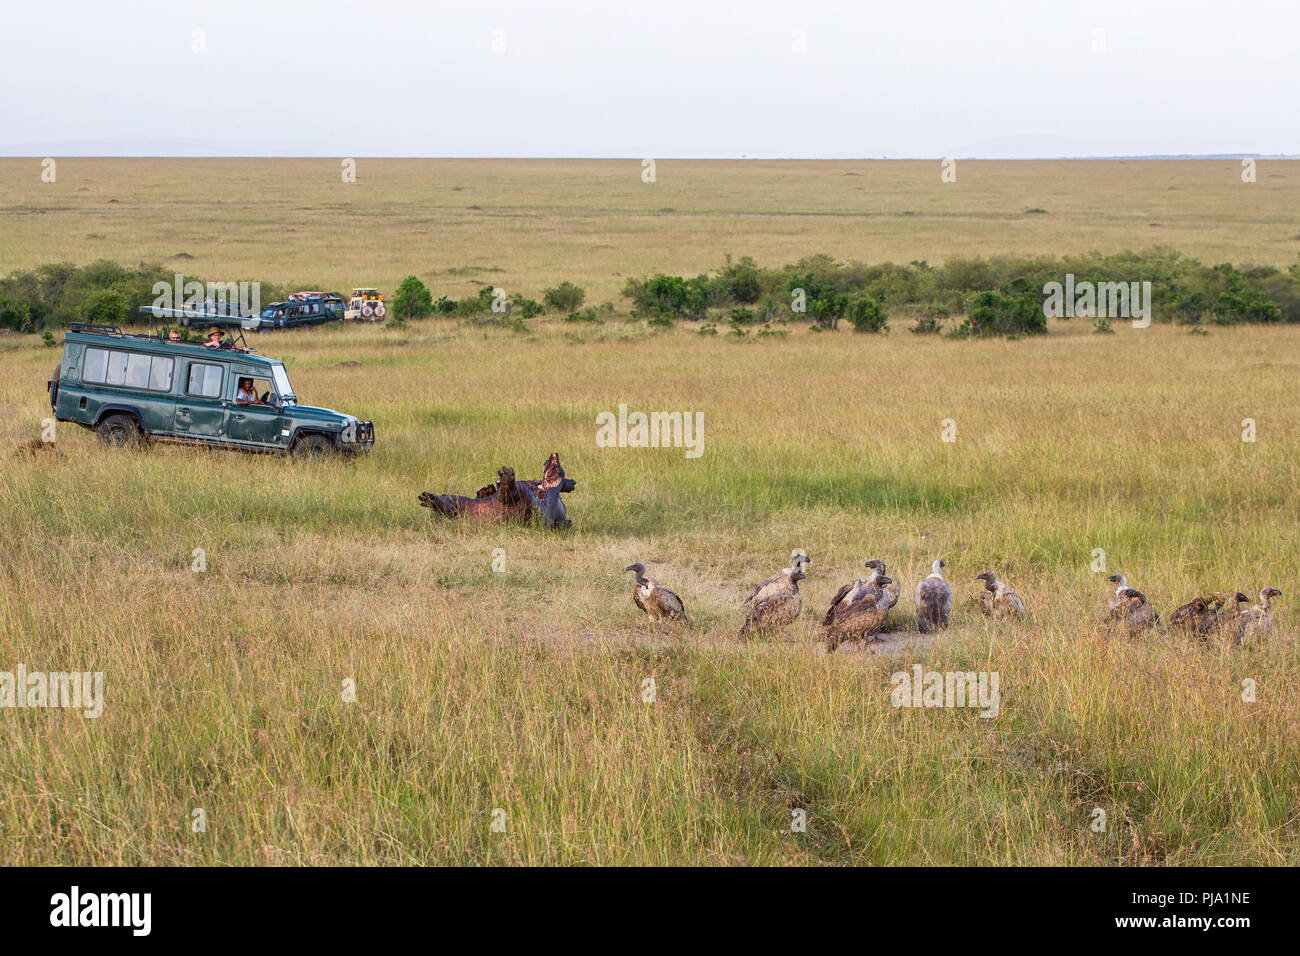 Carcasses with waiting vultures and safari vehicles with tourists - Stock Image